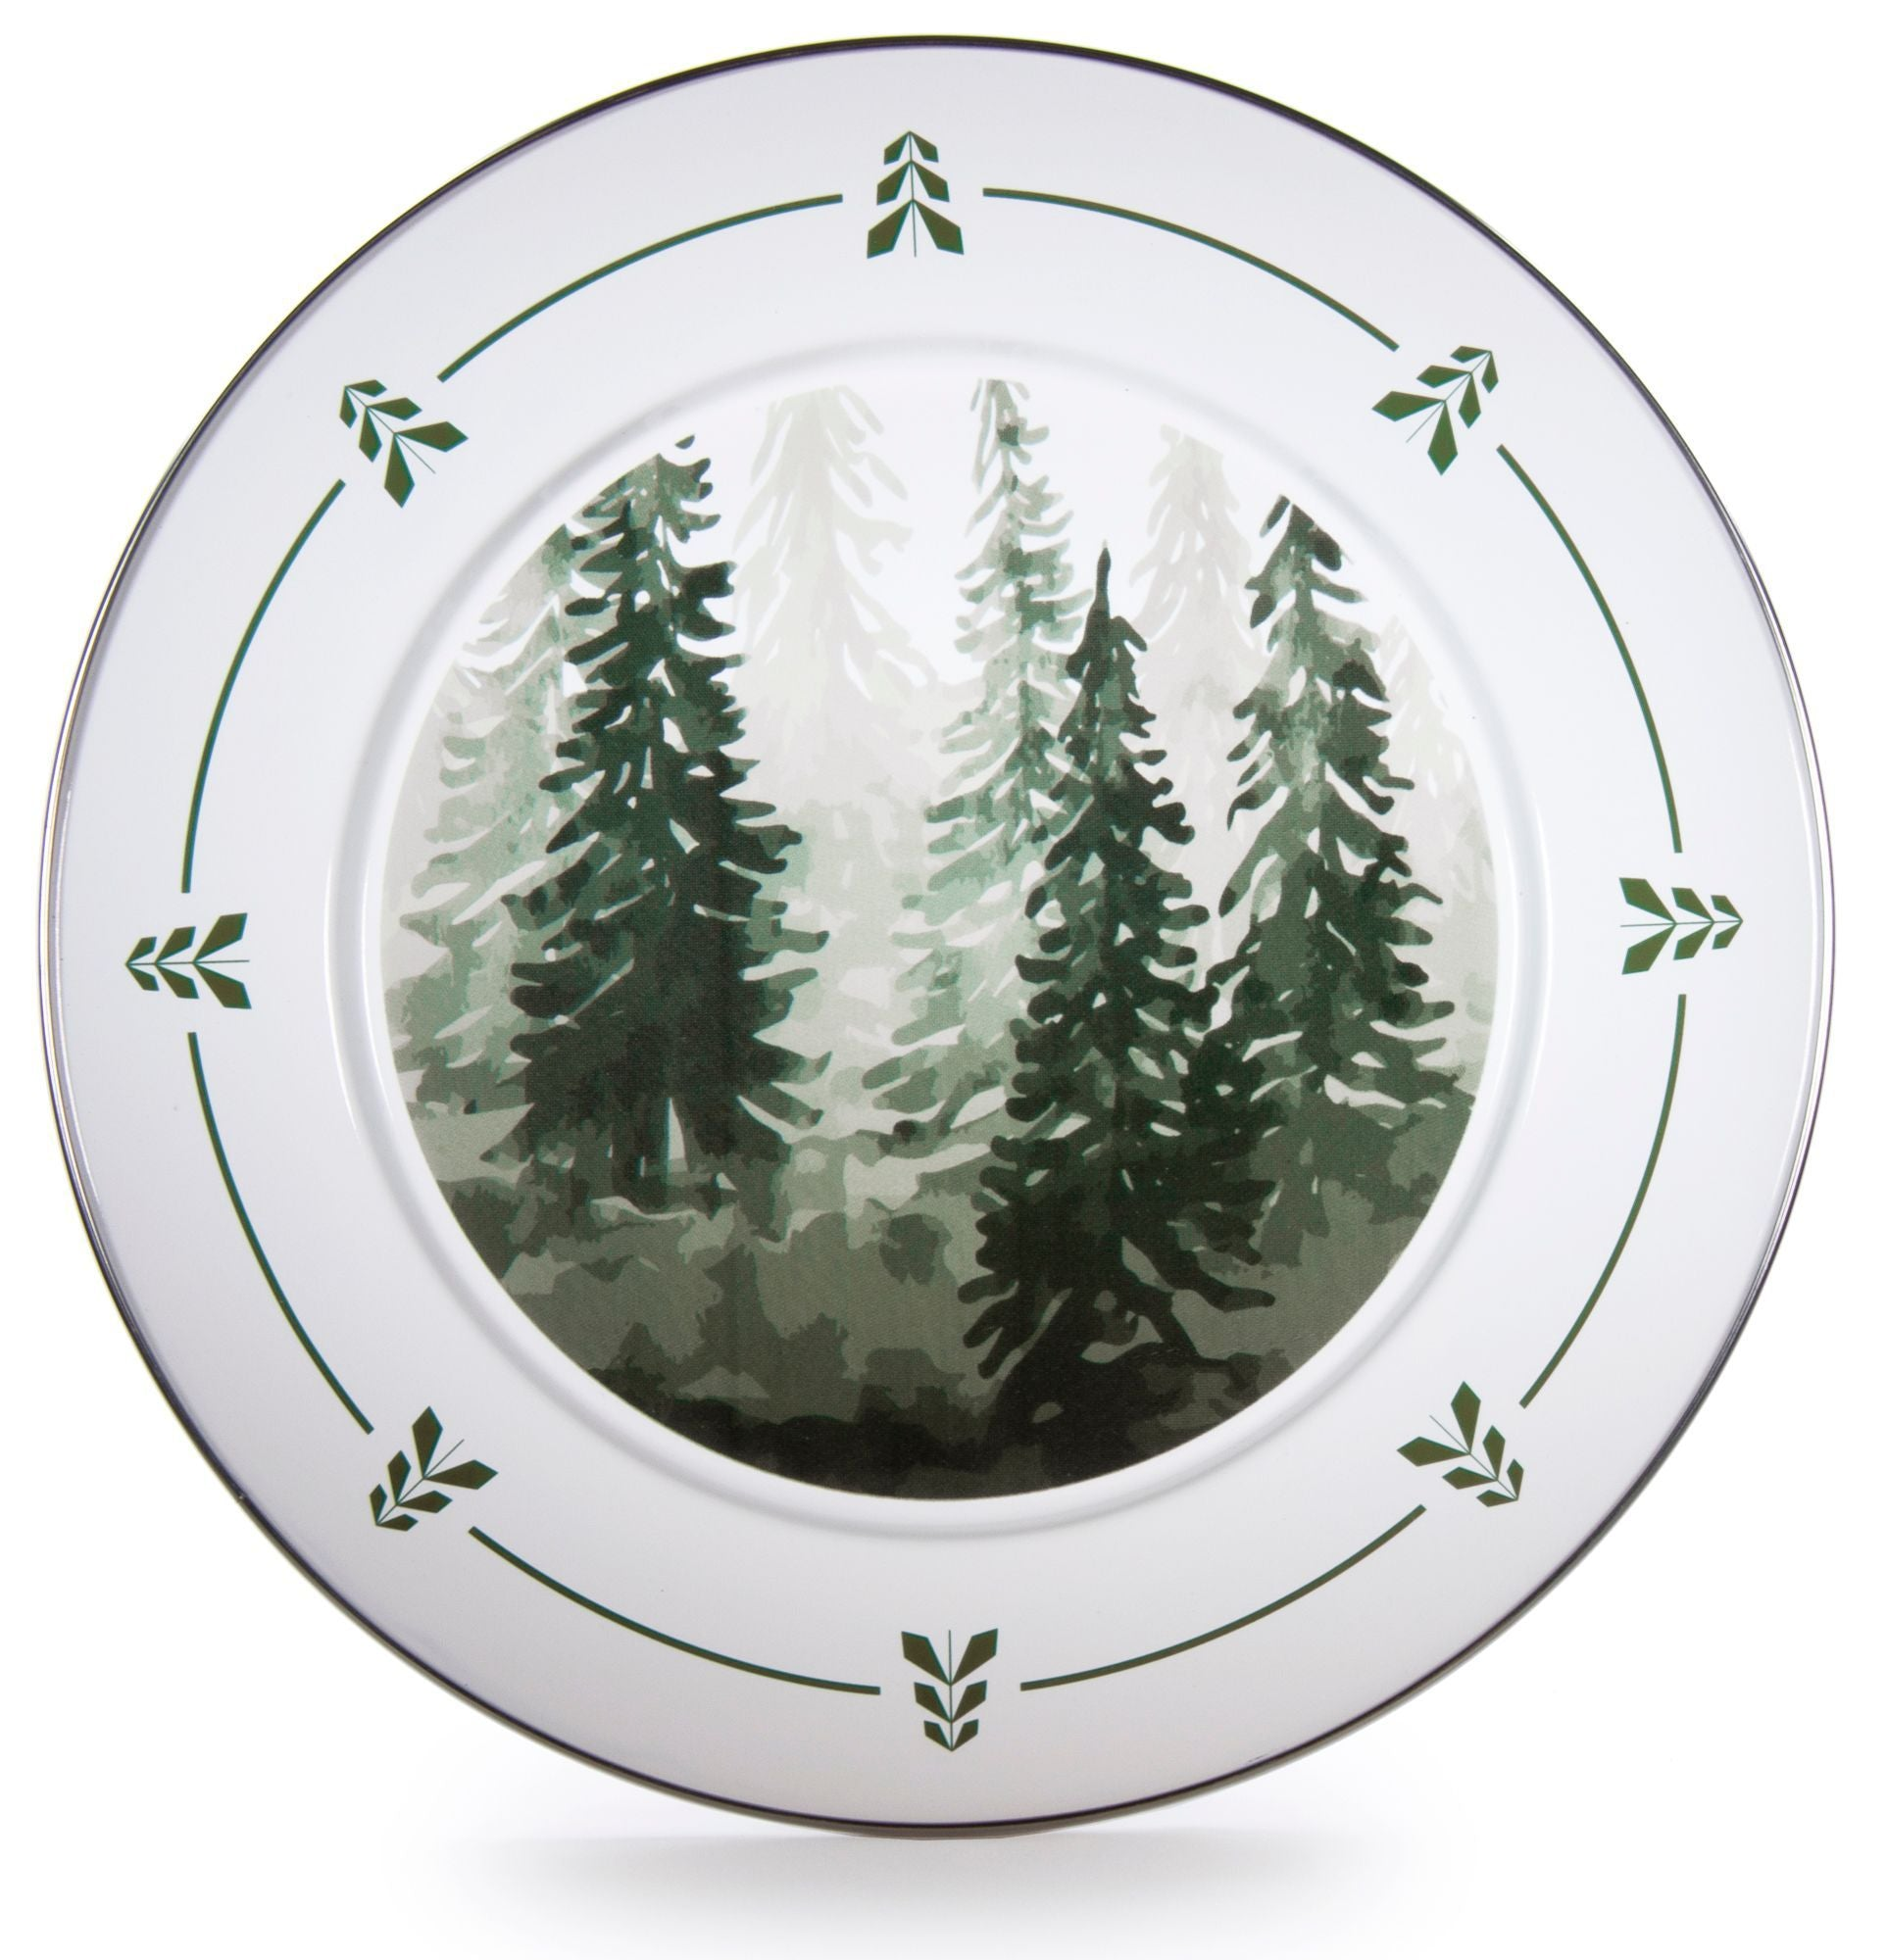 FT26S2 - Set of 2 - Enamelware Forest Trees - Chargers by Golden Rabbit